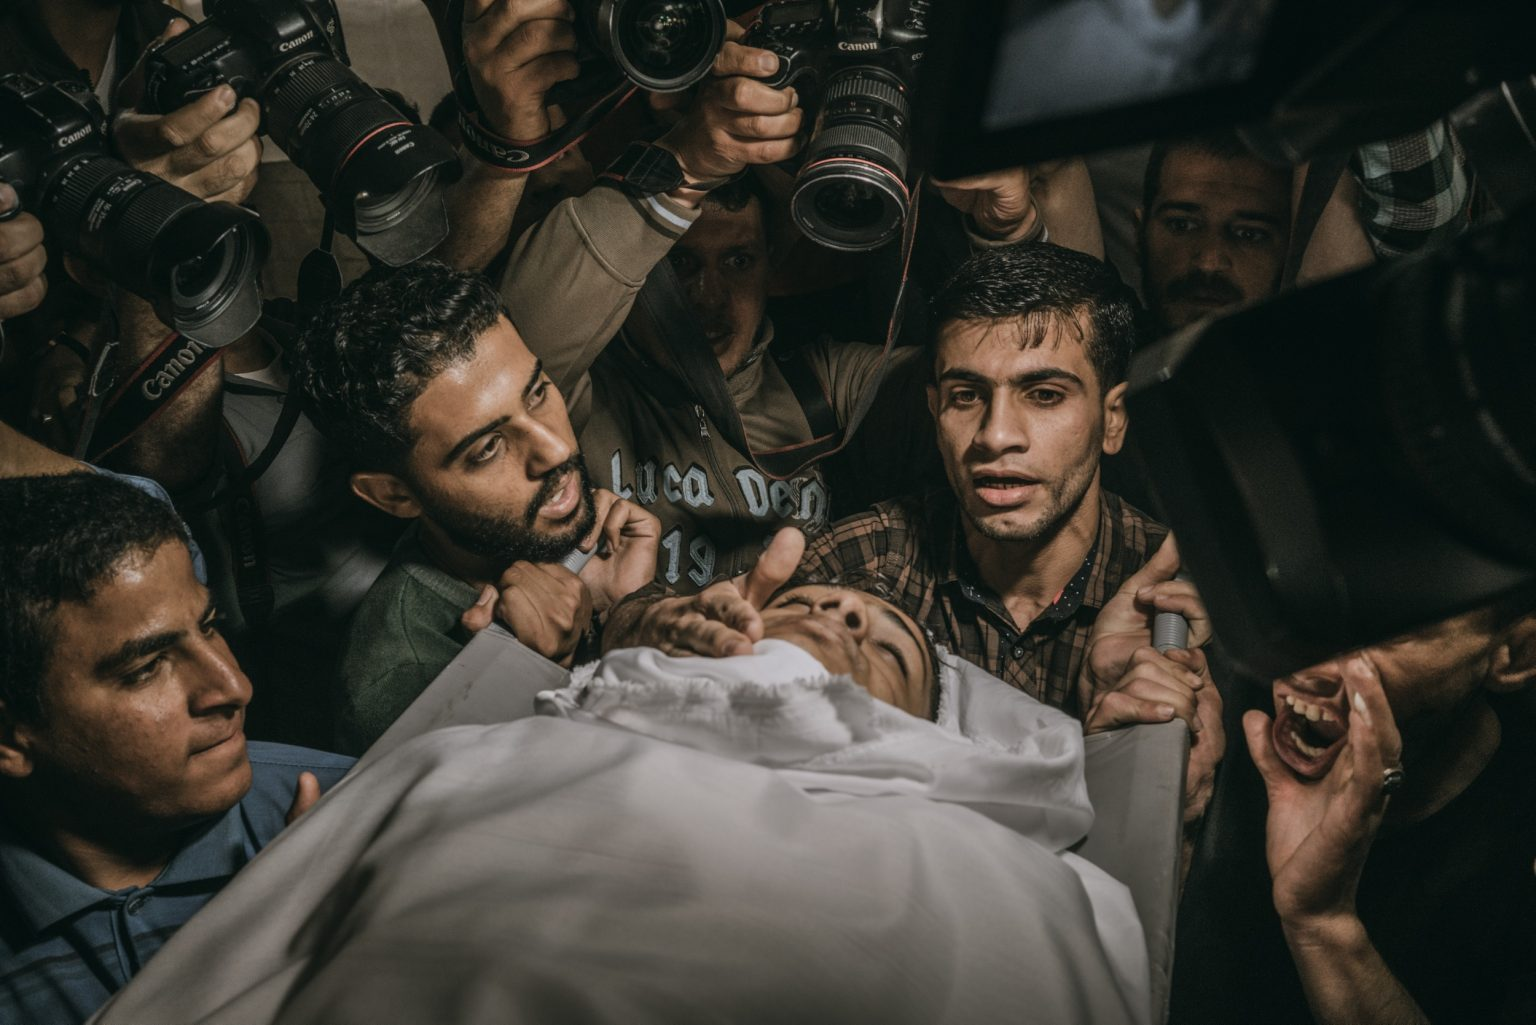 Rafah, Gaza Strip, May 2018 - Relatives and friends of 15 year-old Palestinian Jamal Afaneh mourn during his funeral. Afaneh died from his injuries after being shot on Friday by Israeli troops along the Gaza-Israel border. >< Rafah, Striscia di Gaza, maggio 2018 - I funerali di Jamal Afaneh, un ragazzo palestinese di 15 anni, ucciso da un soldato israeliano durante le proteste lungo il confine tra Gaza e Israele.